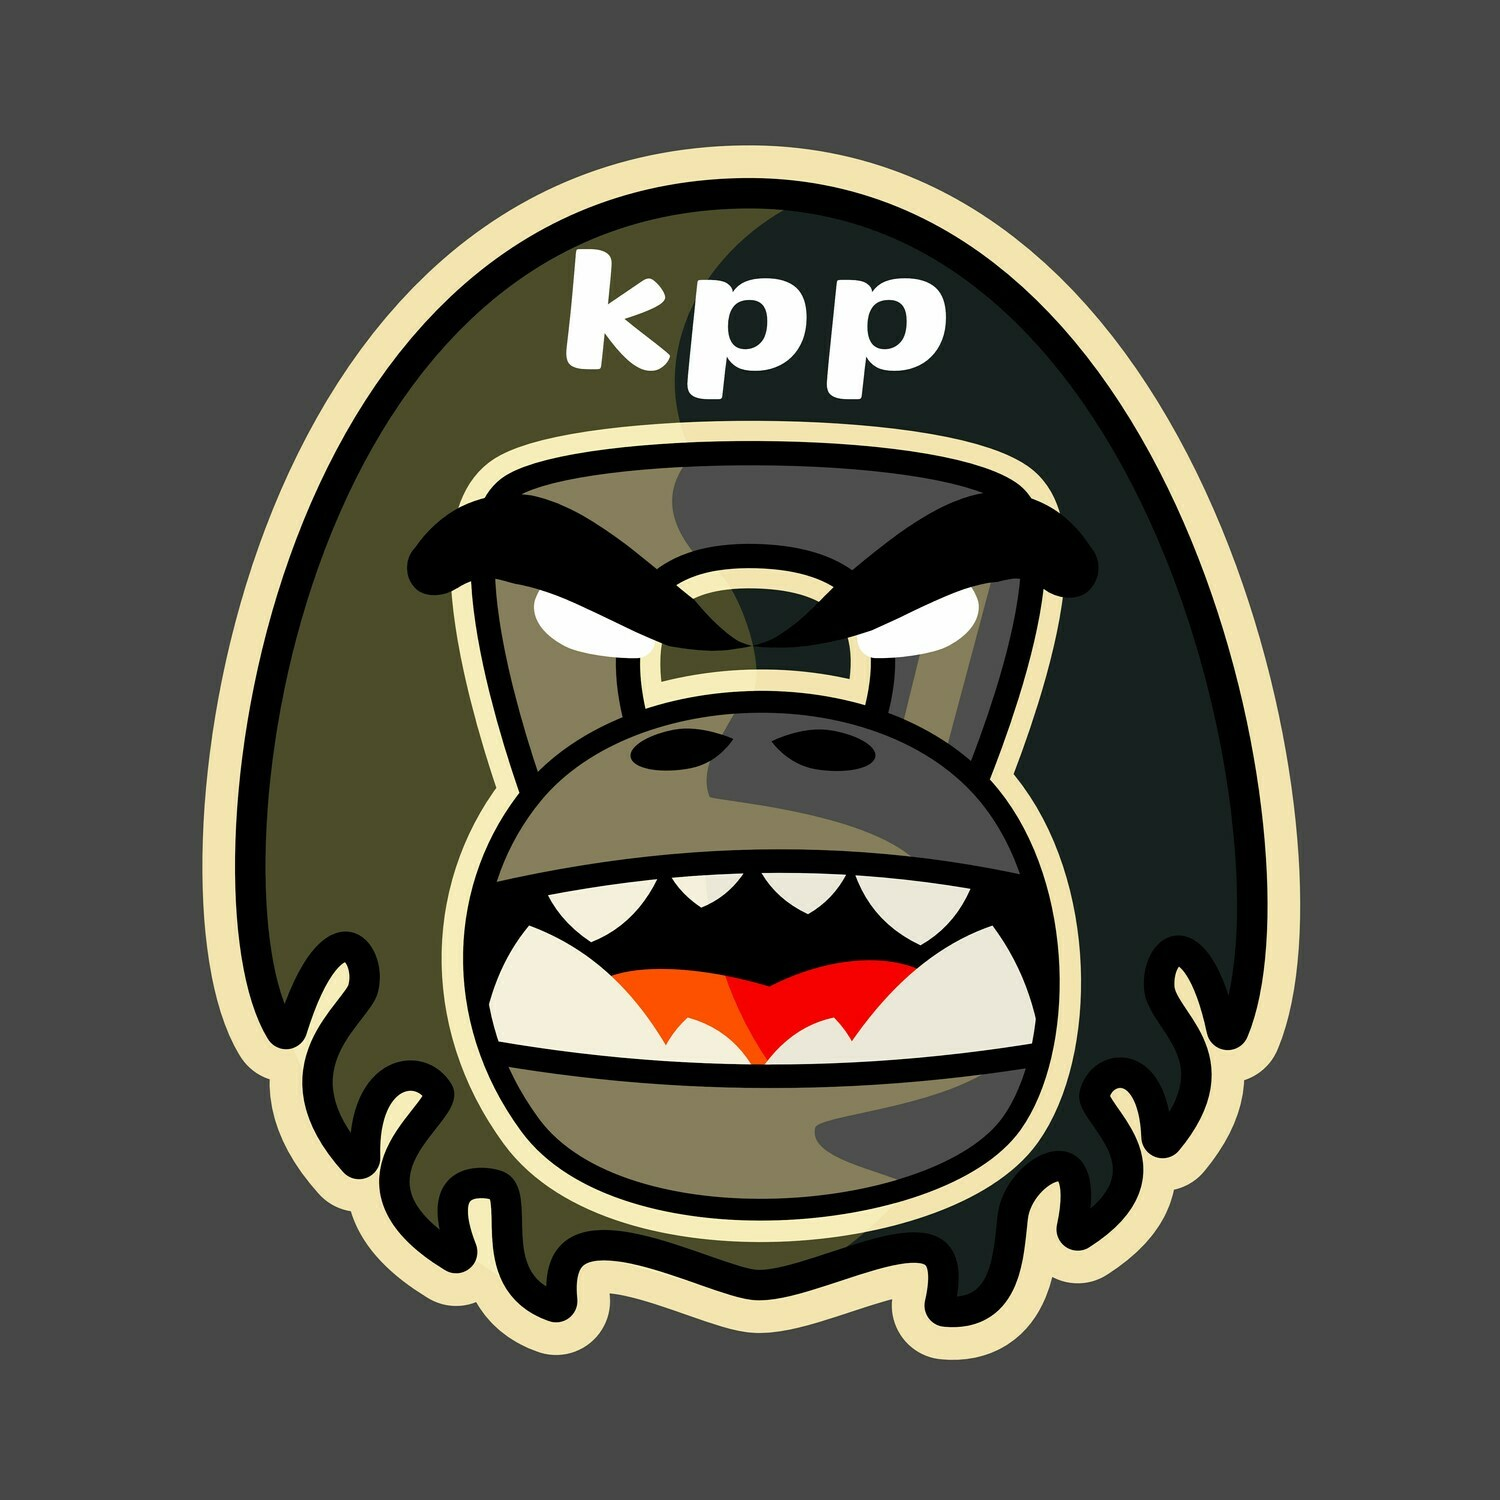 KPP gorilla head sticker